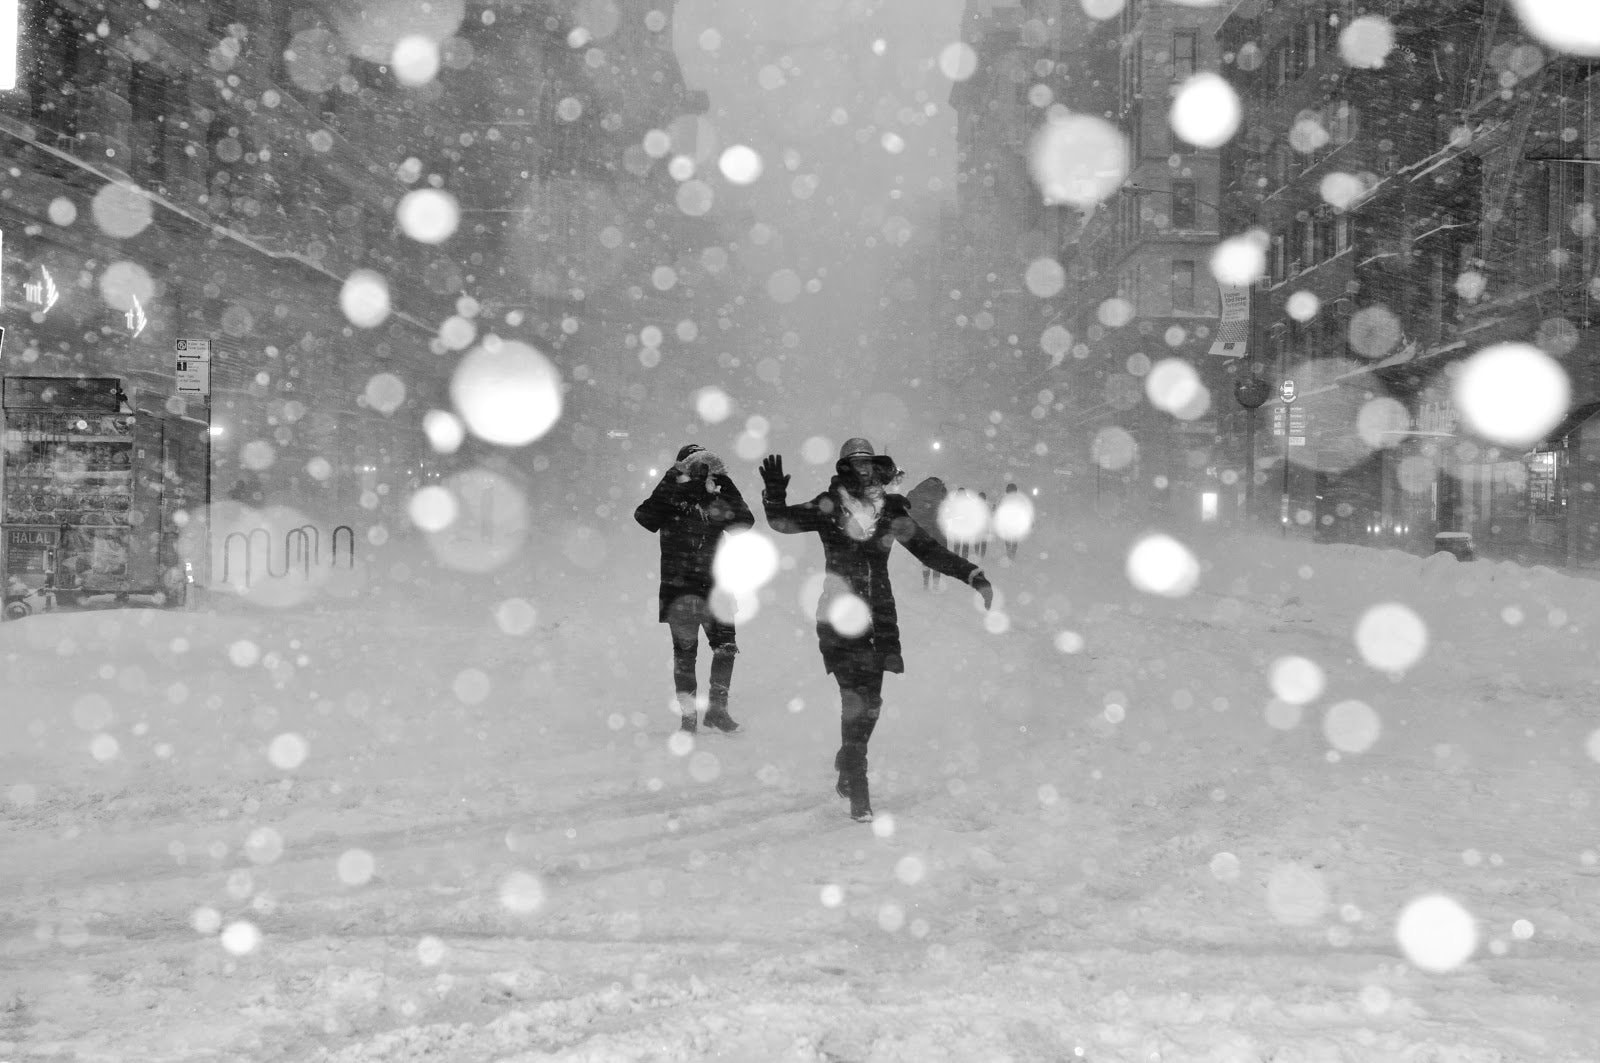 People walking through a snow storm by Jeffrey Blum